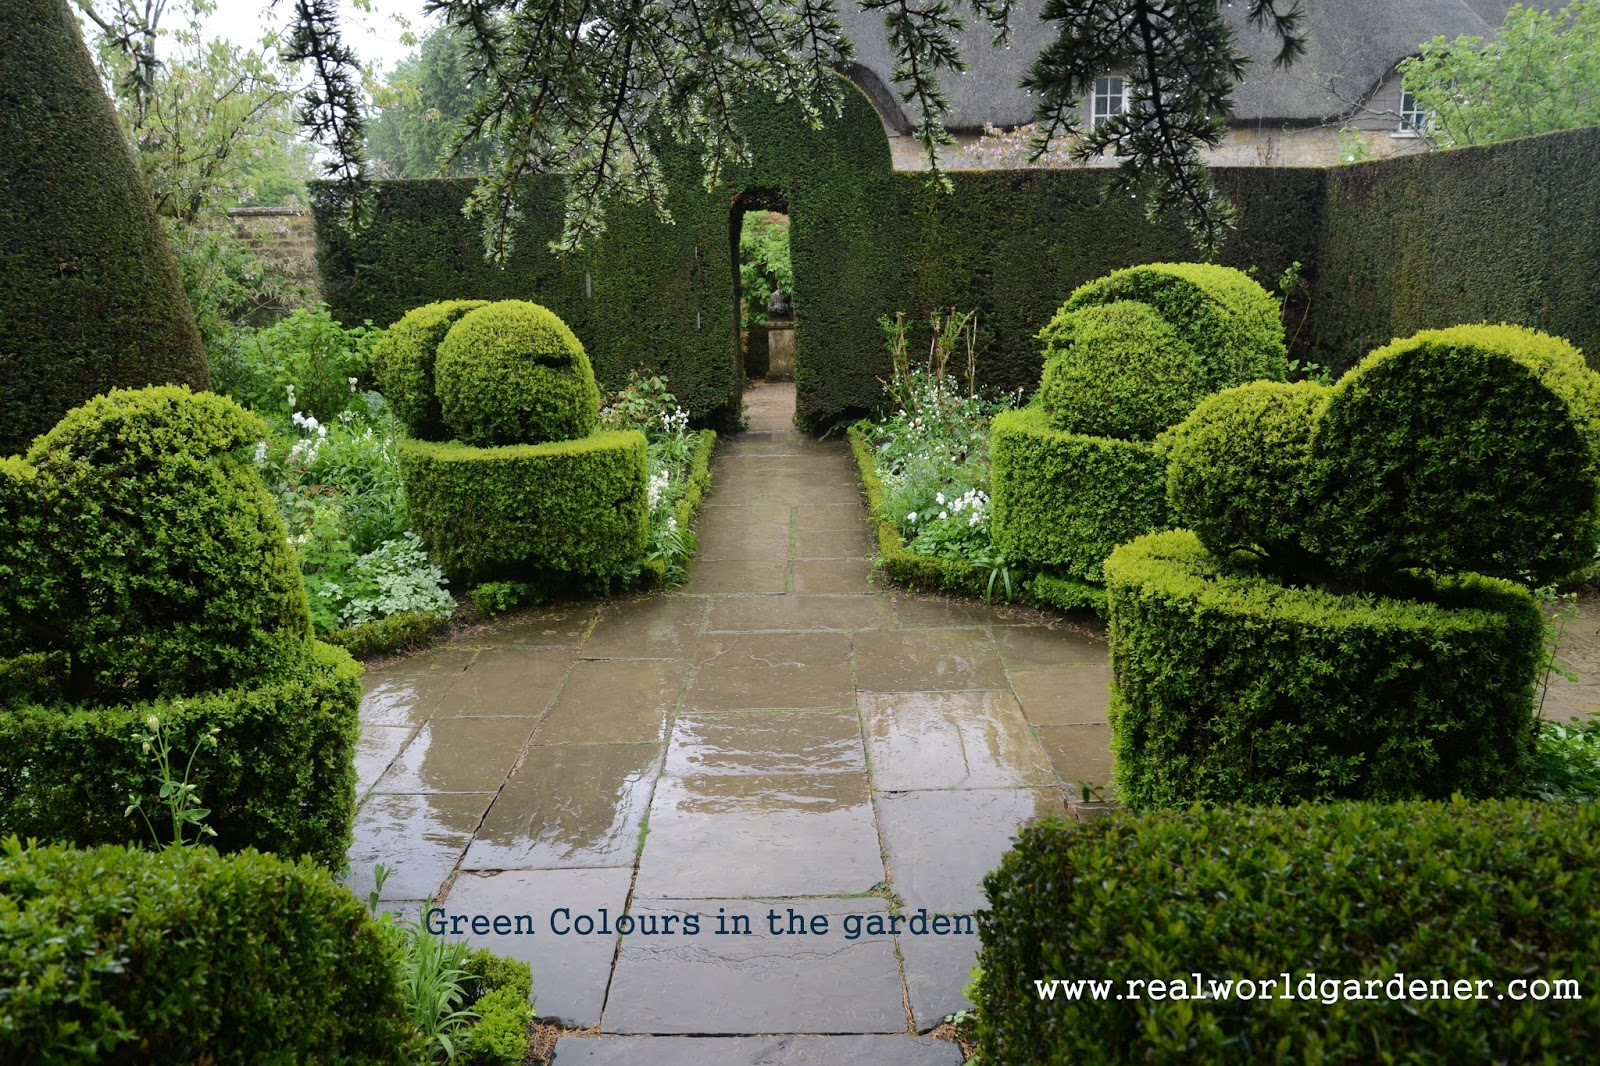 Real world gardener green colours in design elements for Garden design podcast